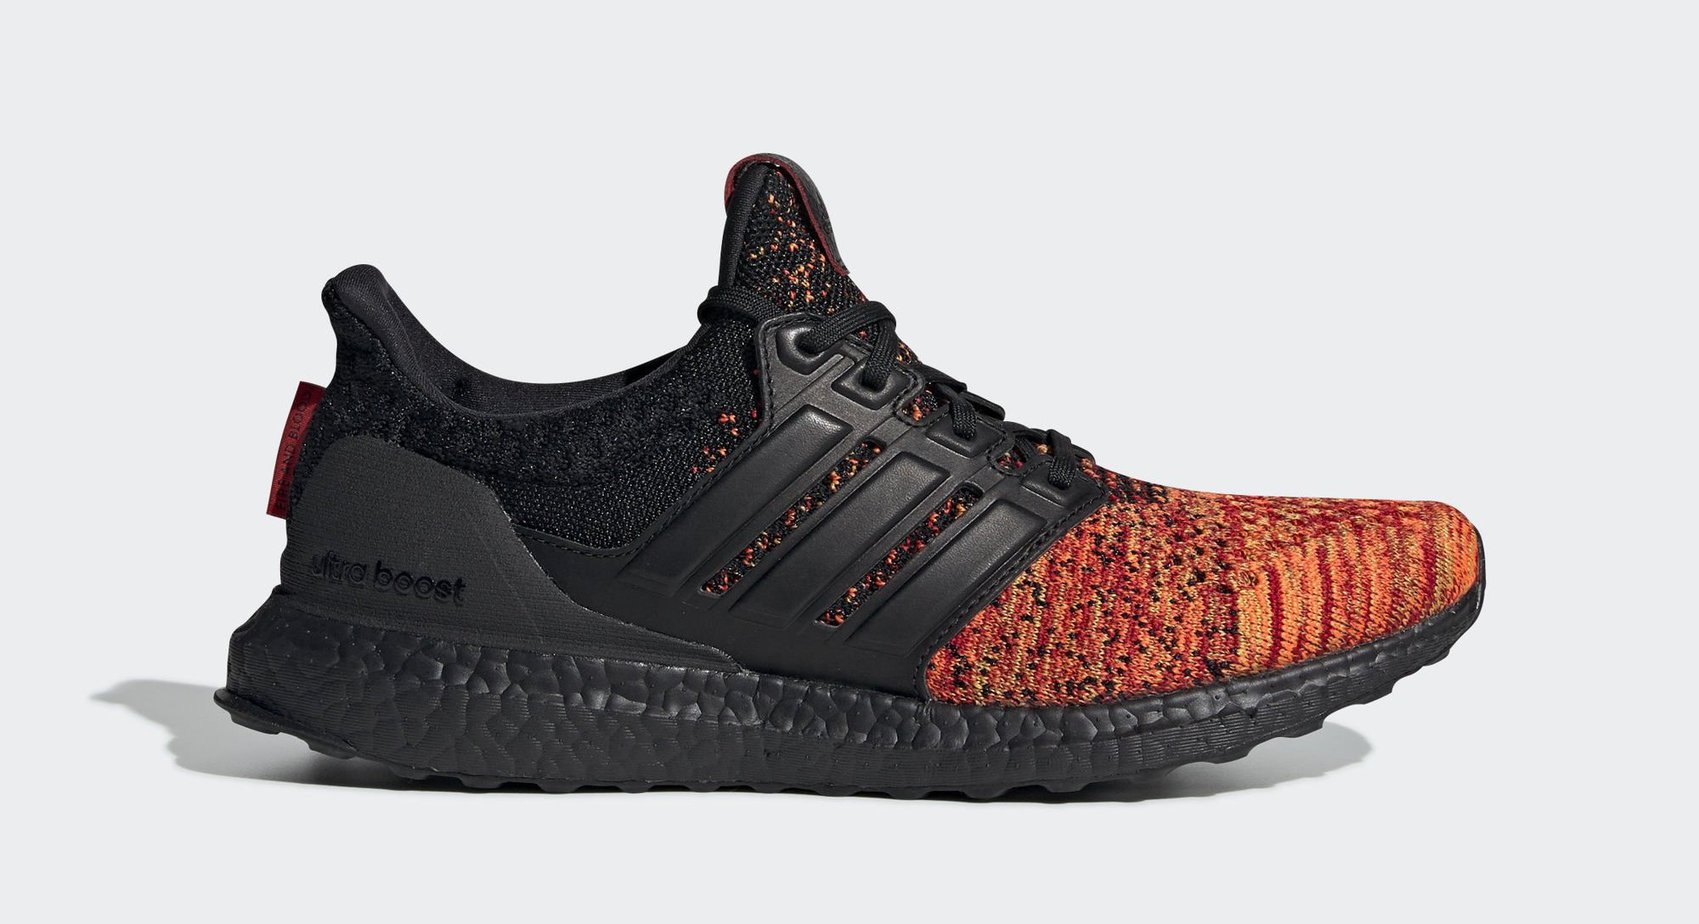 "2f9421da4c6c GOT x adidas Ultra Boost ""House Targaryen"" Core Black Core Black Scarlet Red  March 22"